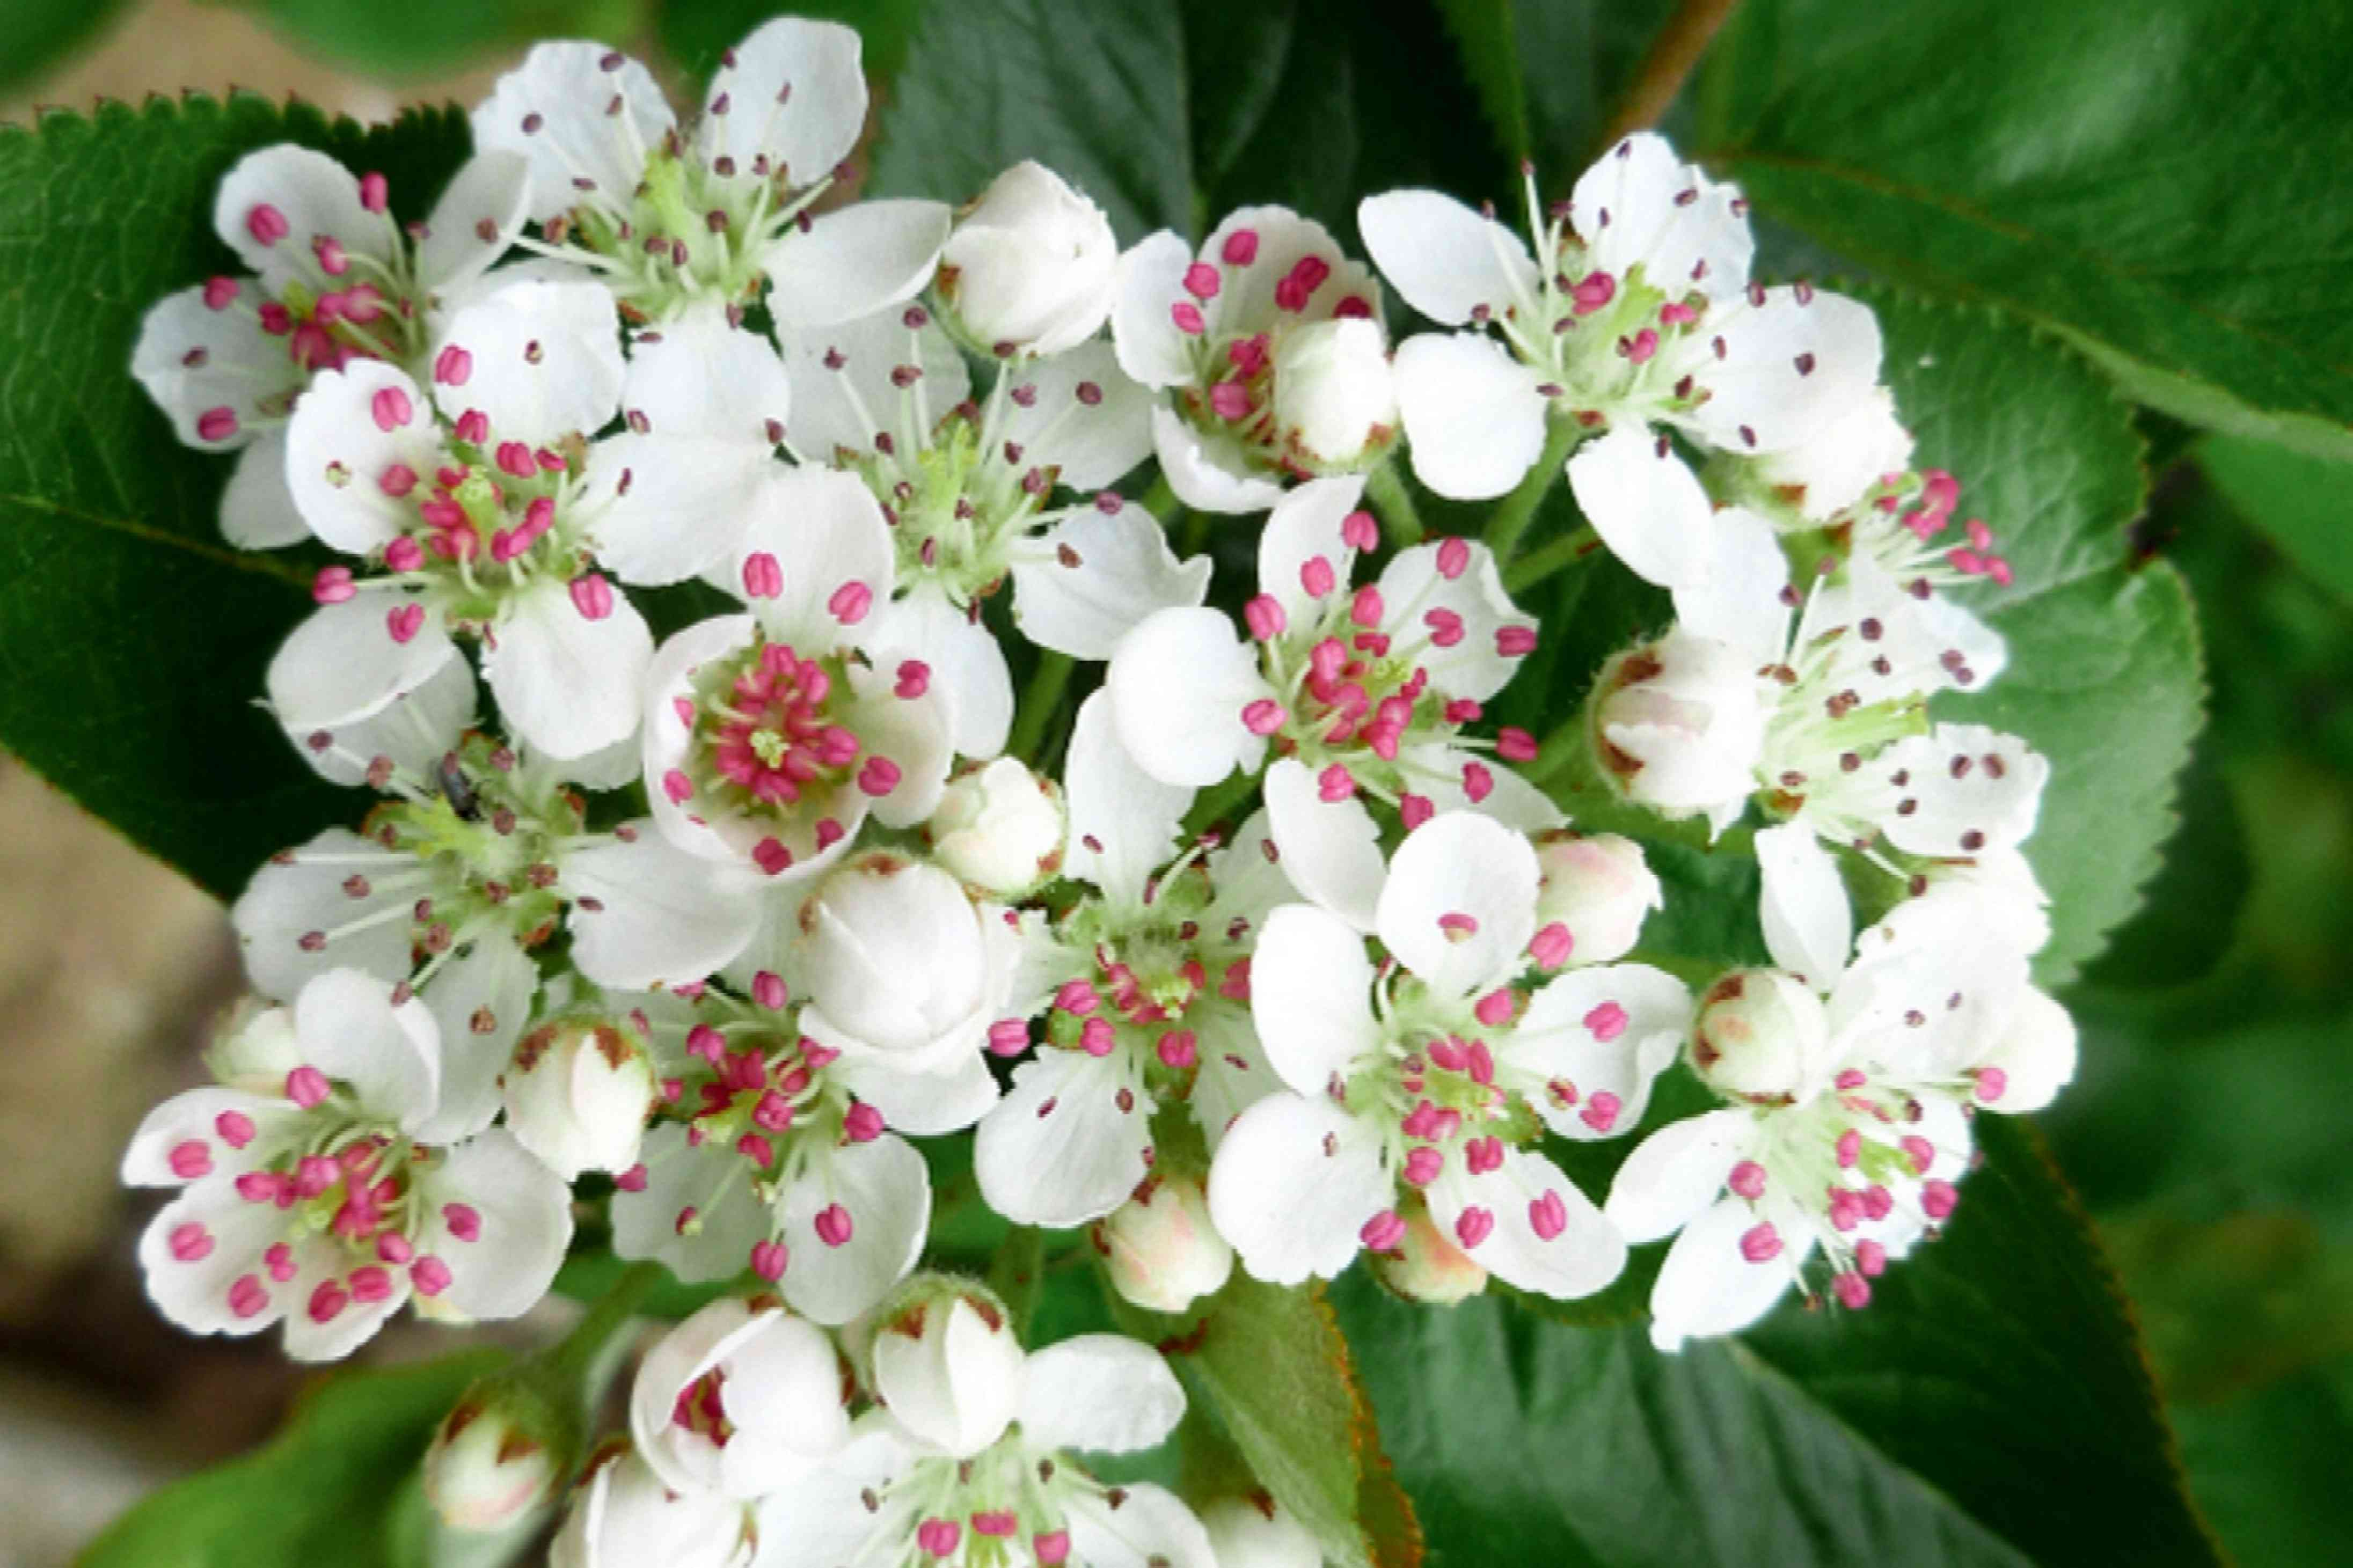 Black chokeberry plant with small white five-petaled flowers closeup